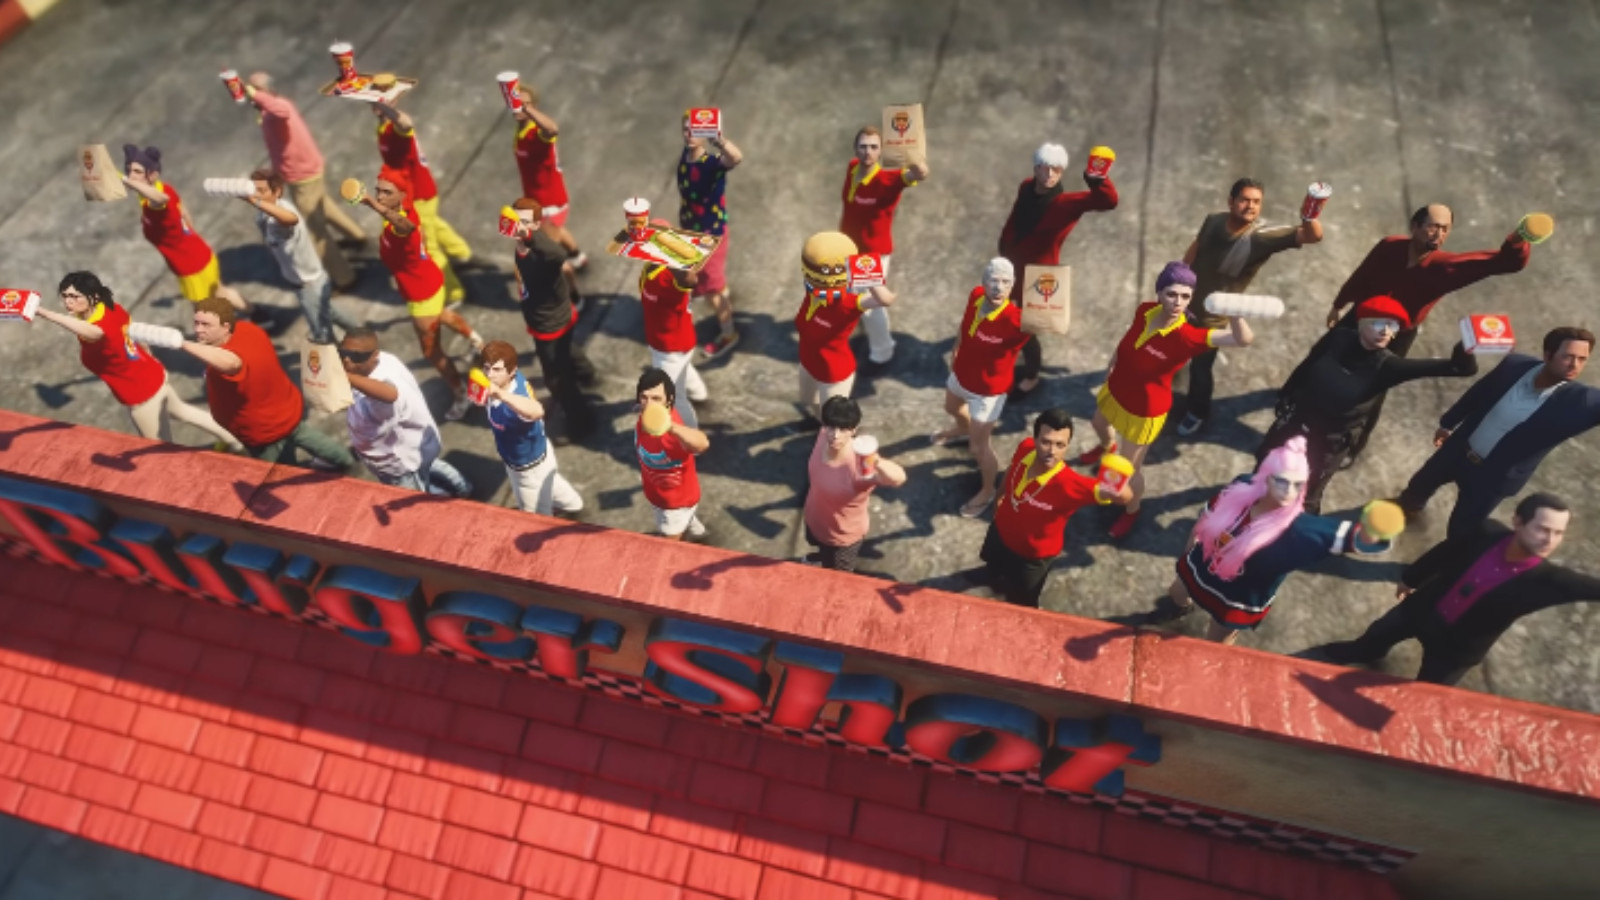 GTA NoPixel RP BurgerShot employees on rooftop for anime